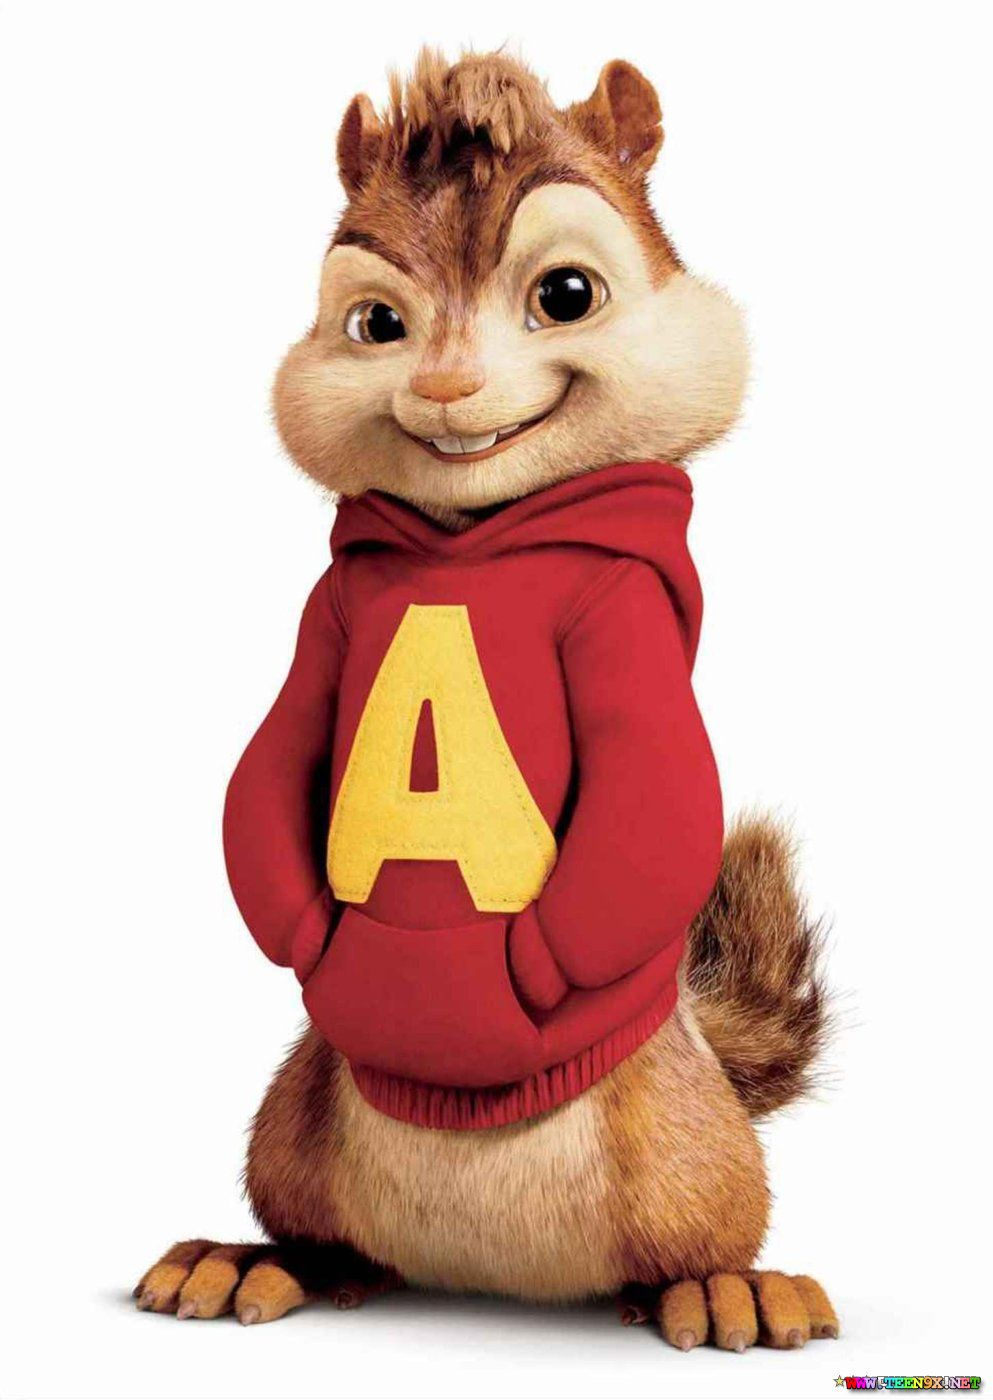 alvin and the chipmunks - photo #7